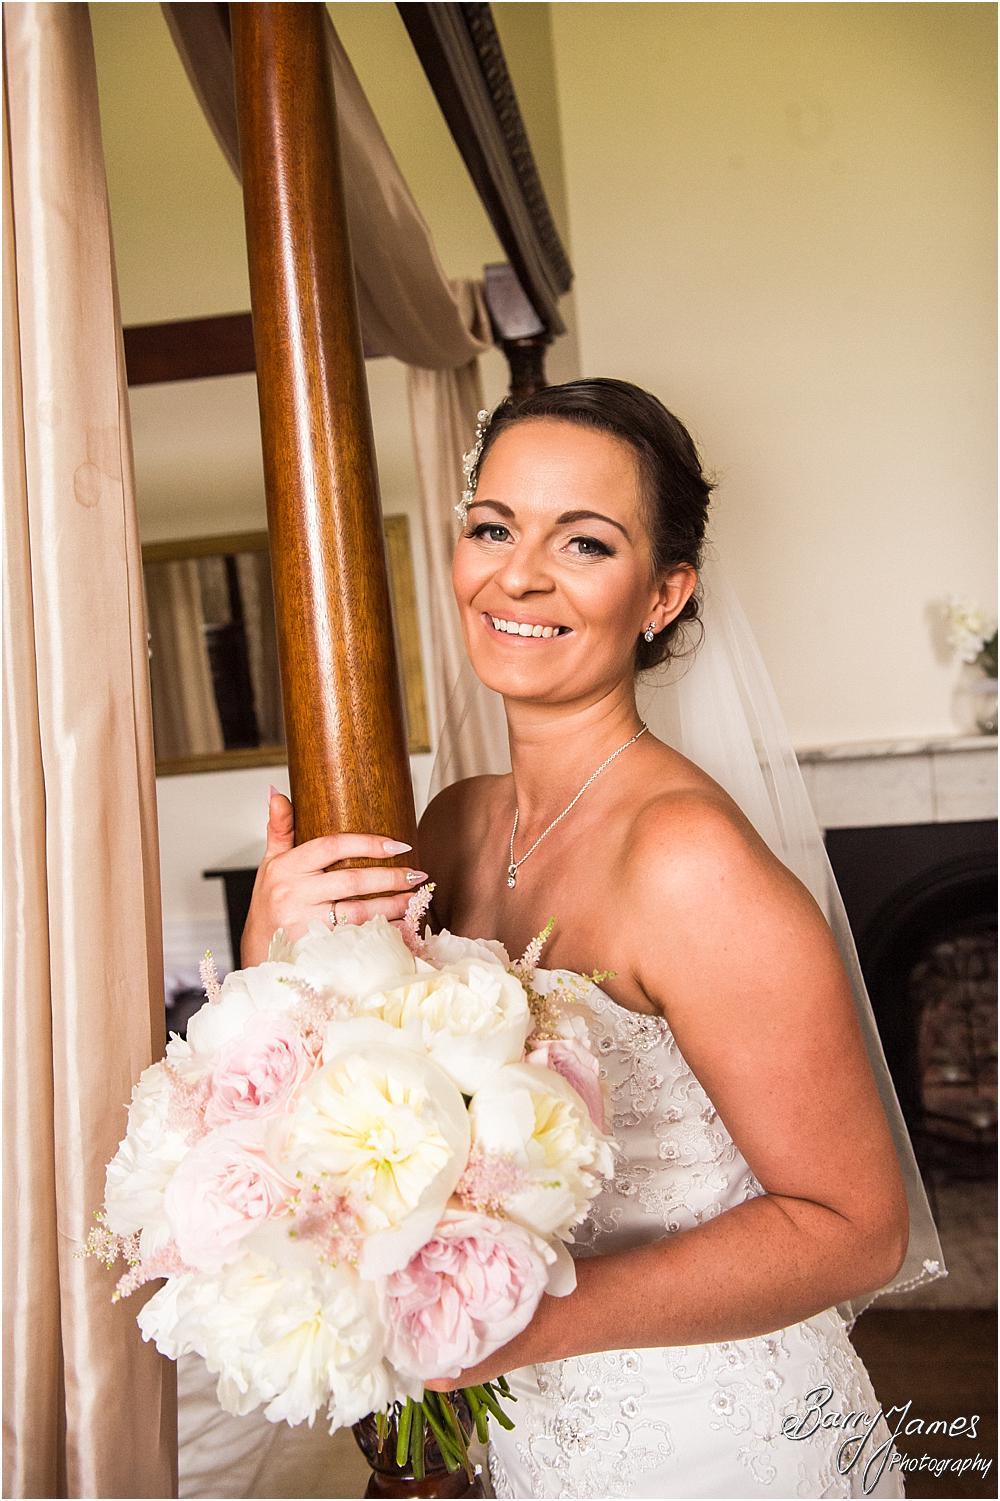 Relaxed portraits of the bridal party ahead of the wedding at Somerford Hall in Brewood by Wolverhampton Wedding Photographer Barry James